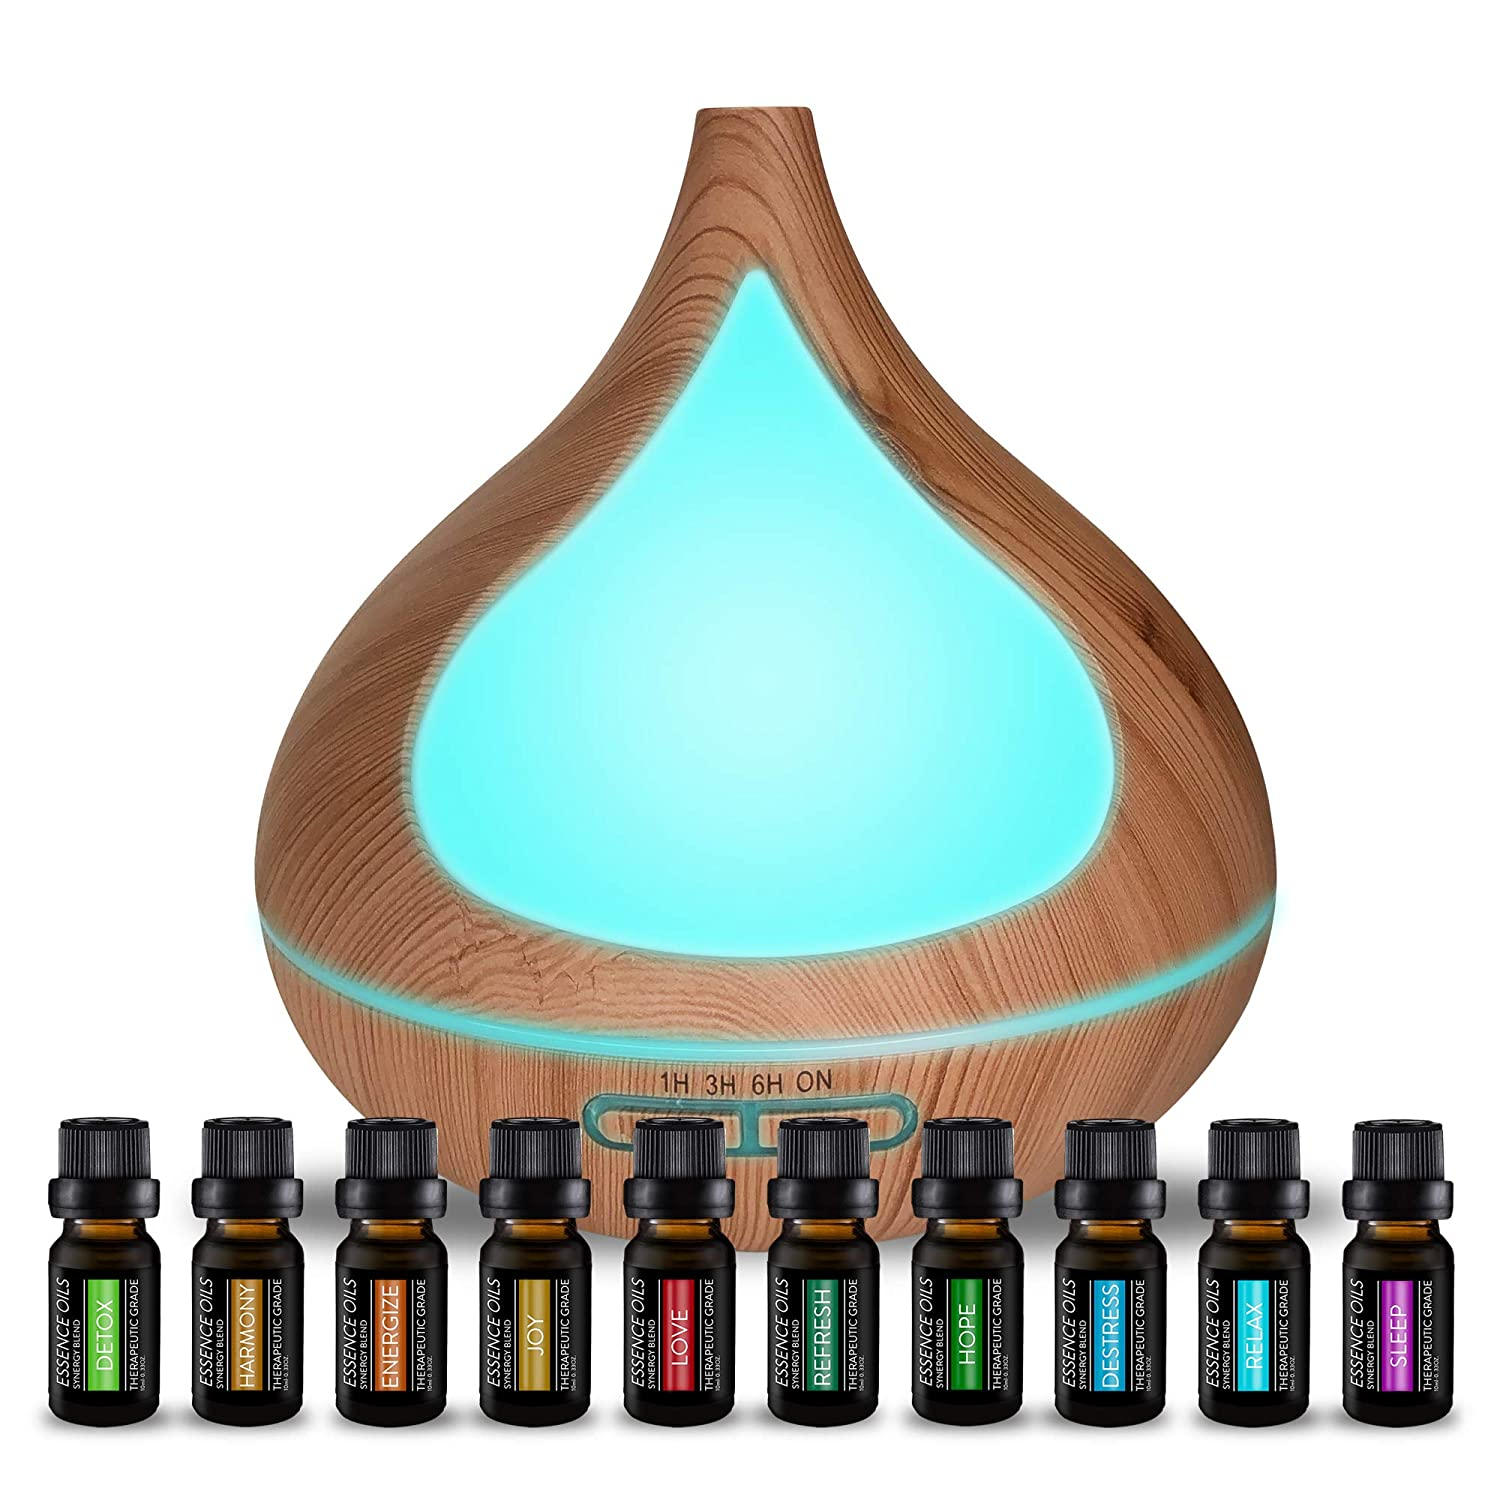 Aromatherapy Diffuser & 10 Essential Oil Synergy Blend Set